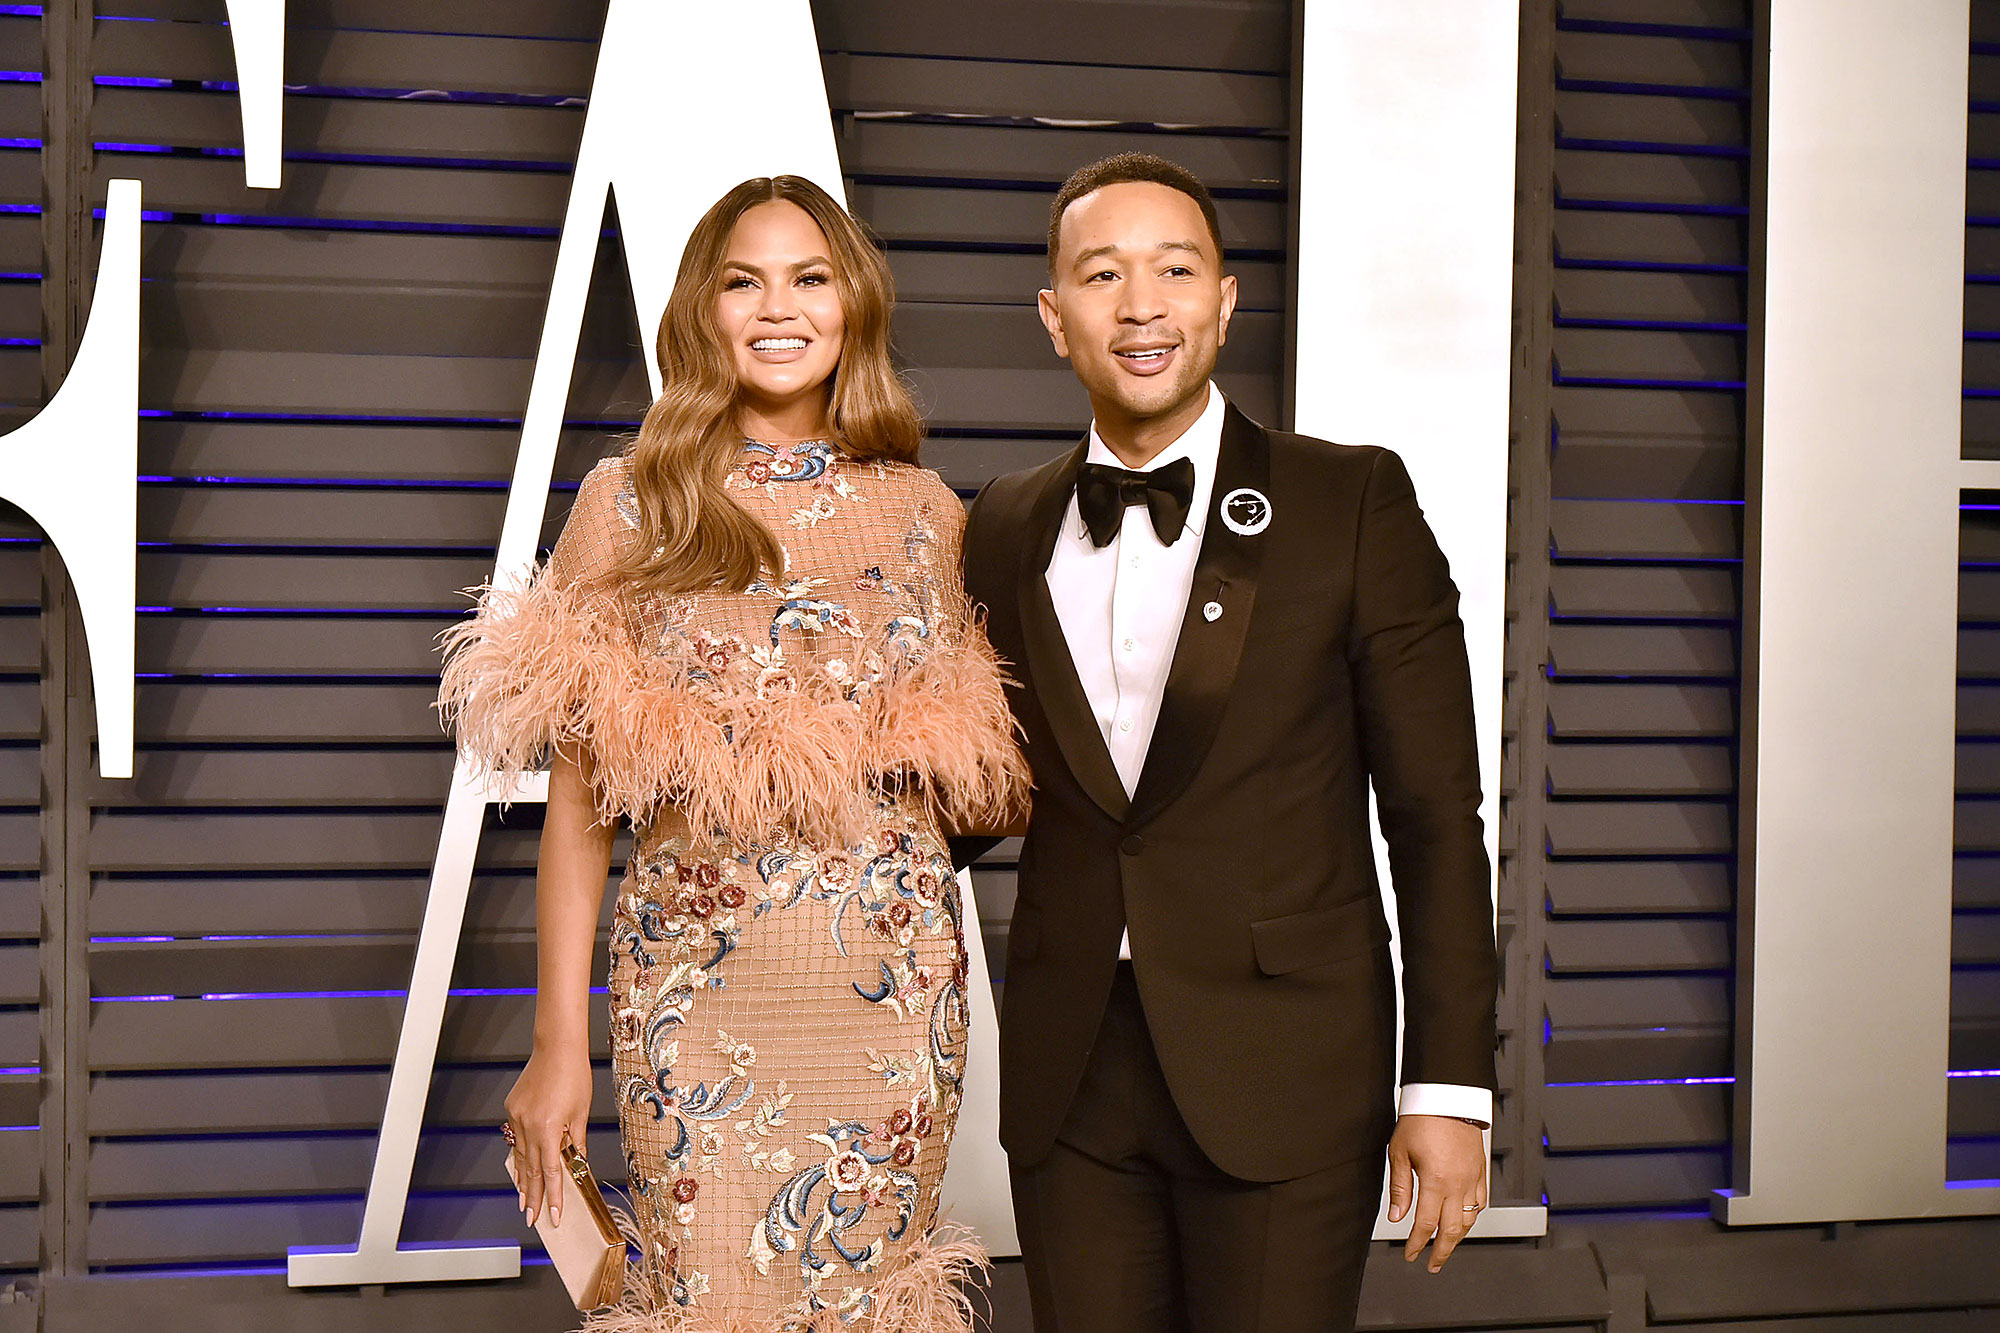 John Legend on College Scam - Chrissy Teigen and John Legend attend the 2019 Vanity Fair Oscar Party at Wallis Annenberg Center for the Performing Arts on February 24, 2019 in Beverly Hills, California.